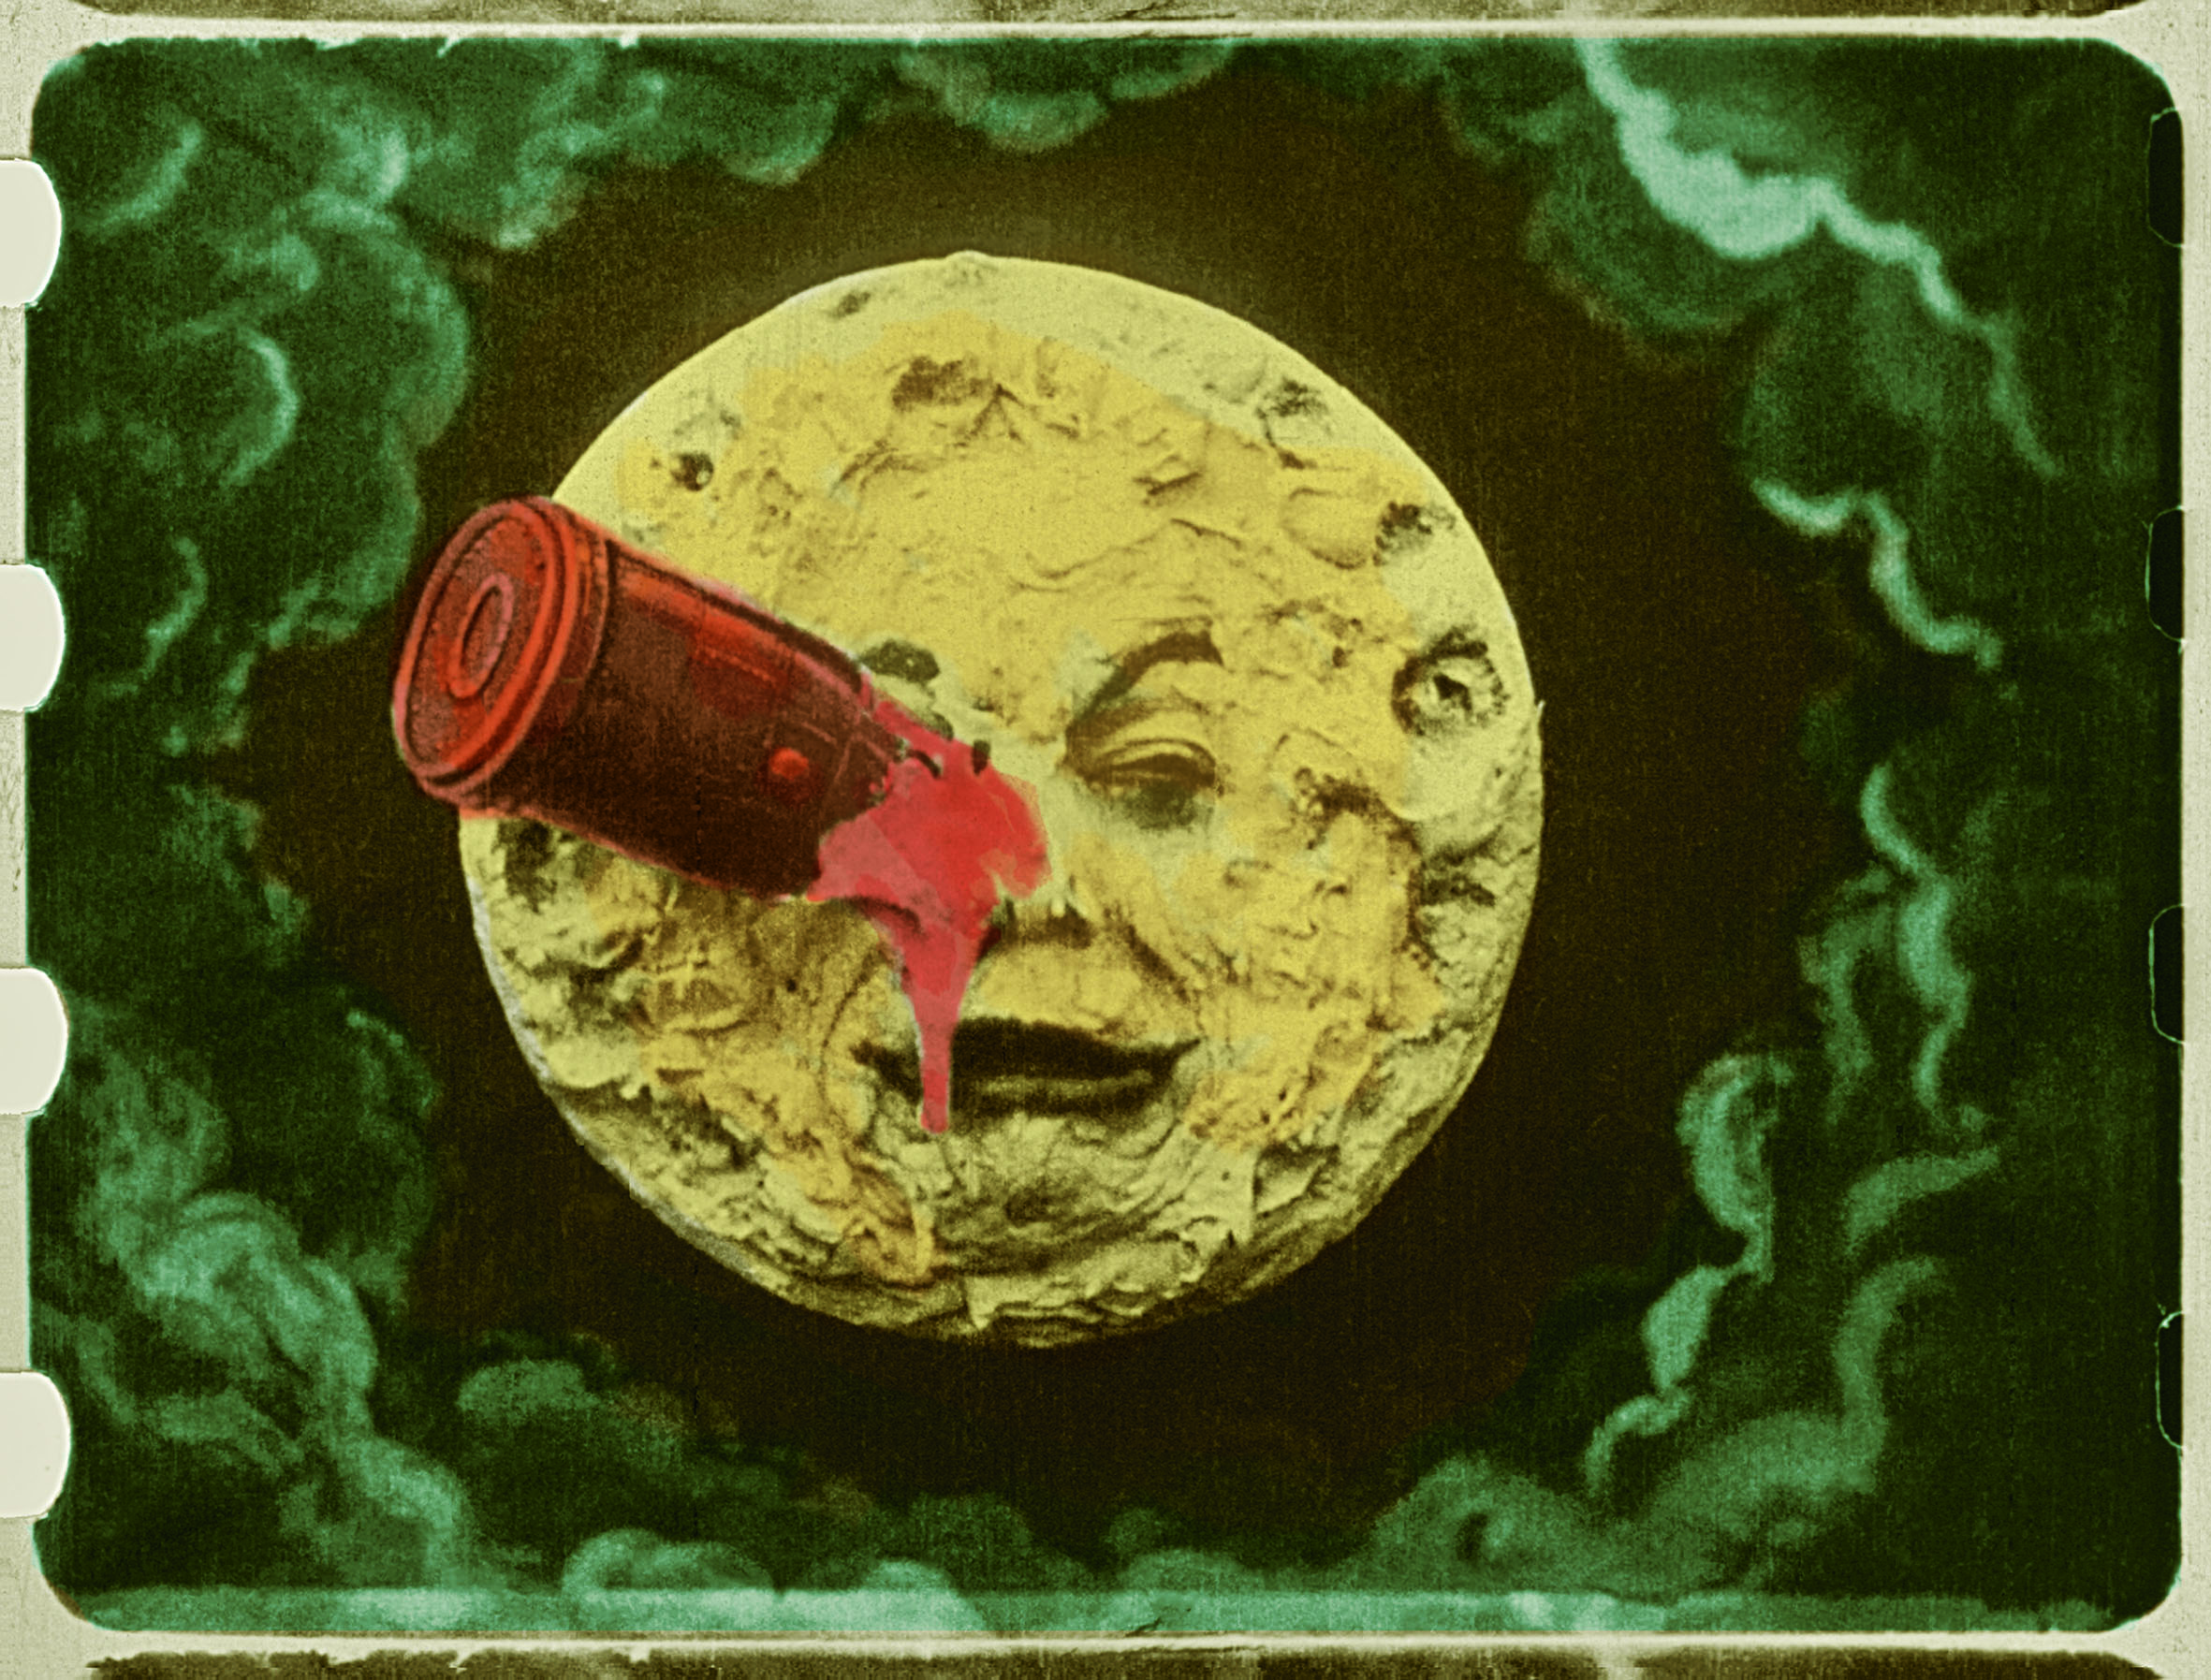 Magia de Georges Méliès